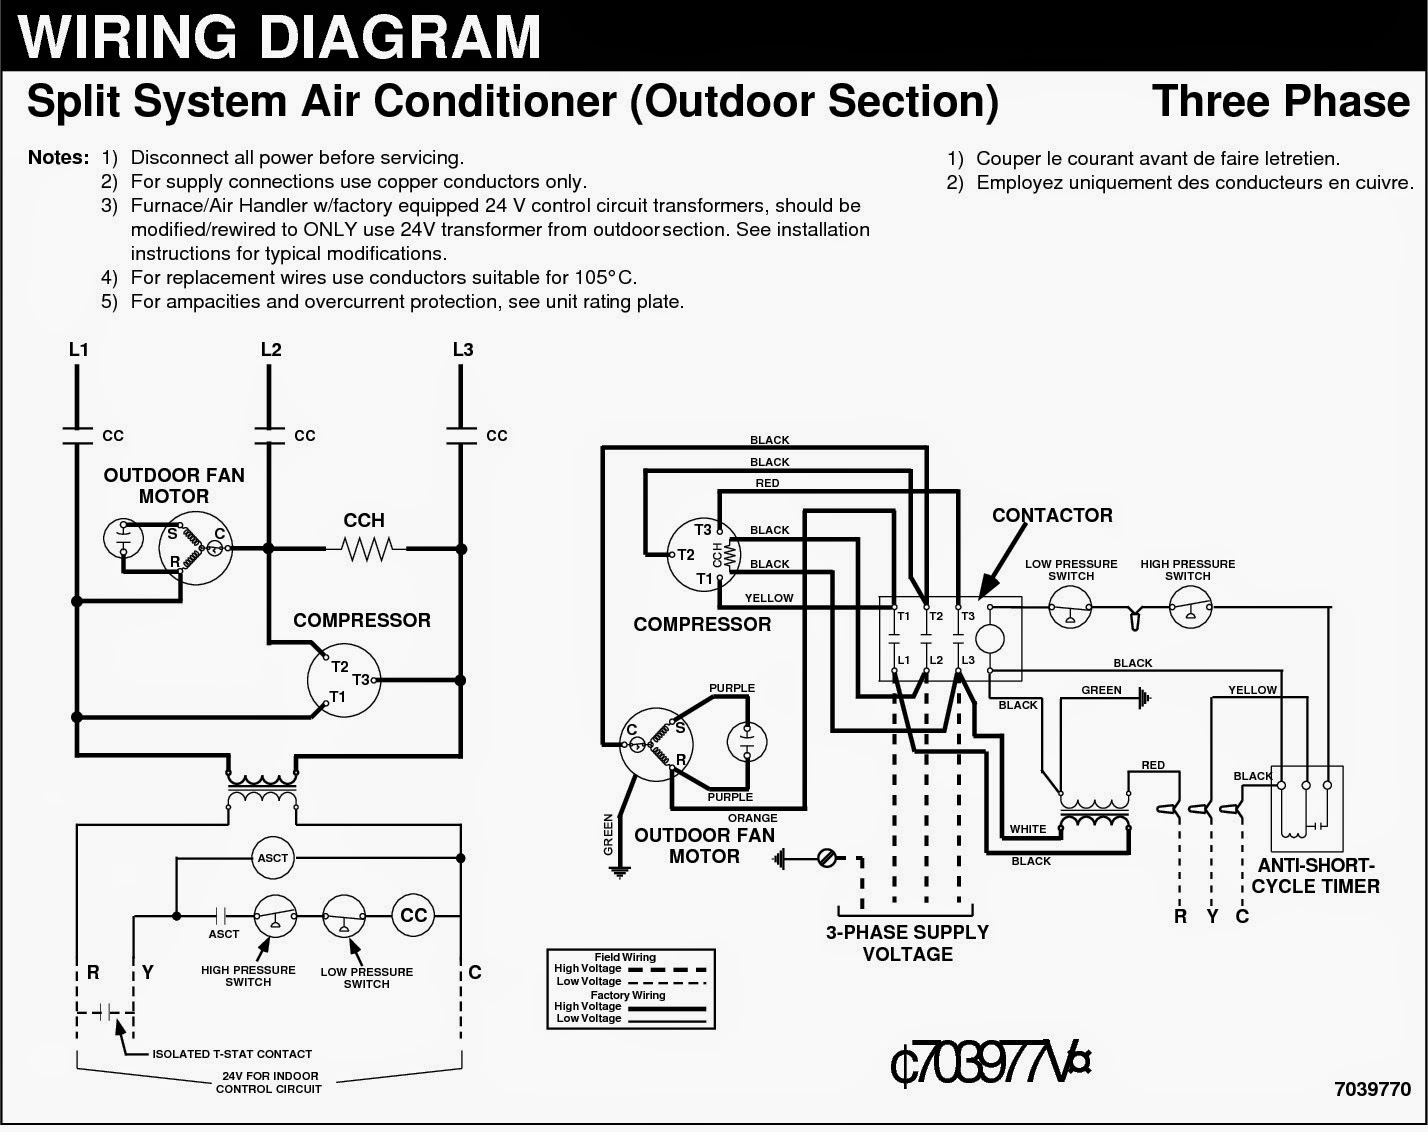 3+phase electrical wiring diagrams for air conditioning systems part two lg split ac wiring diagram at bayanpartner.co